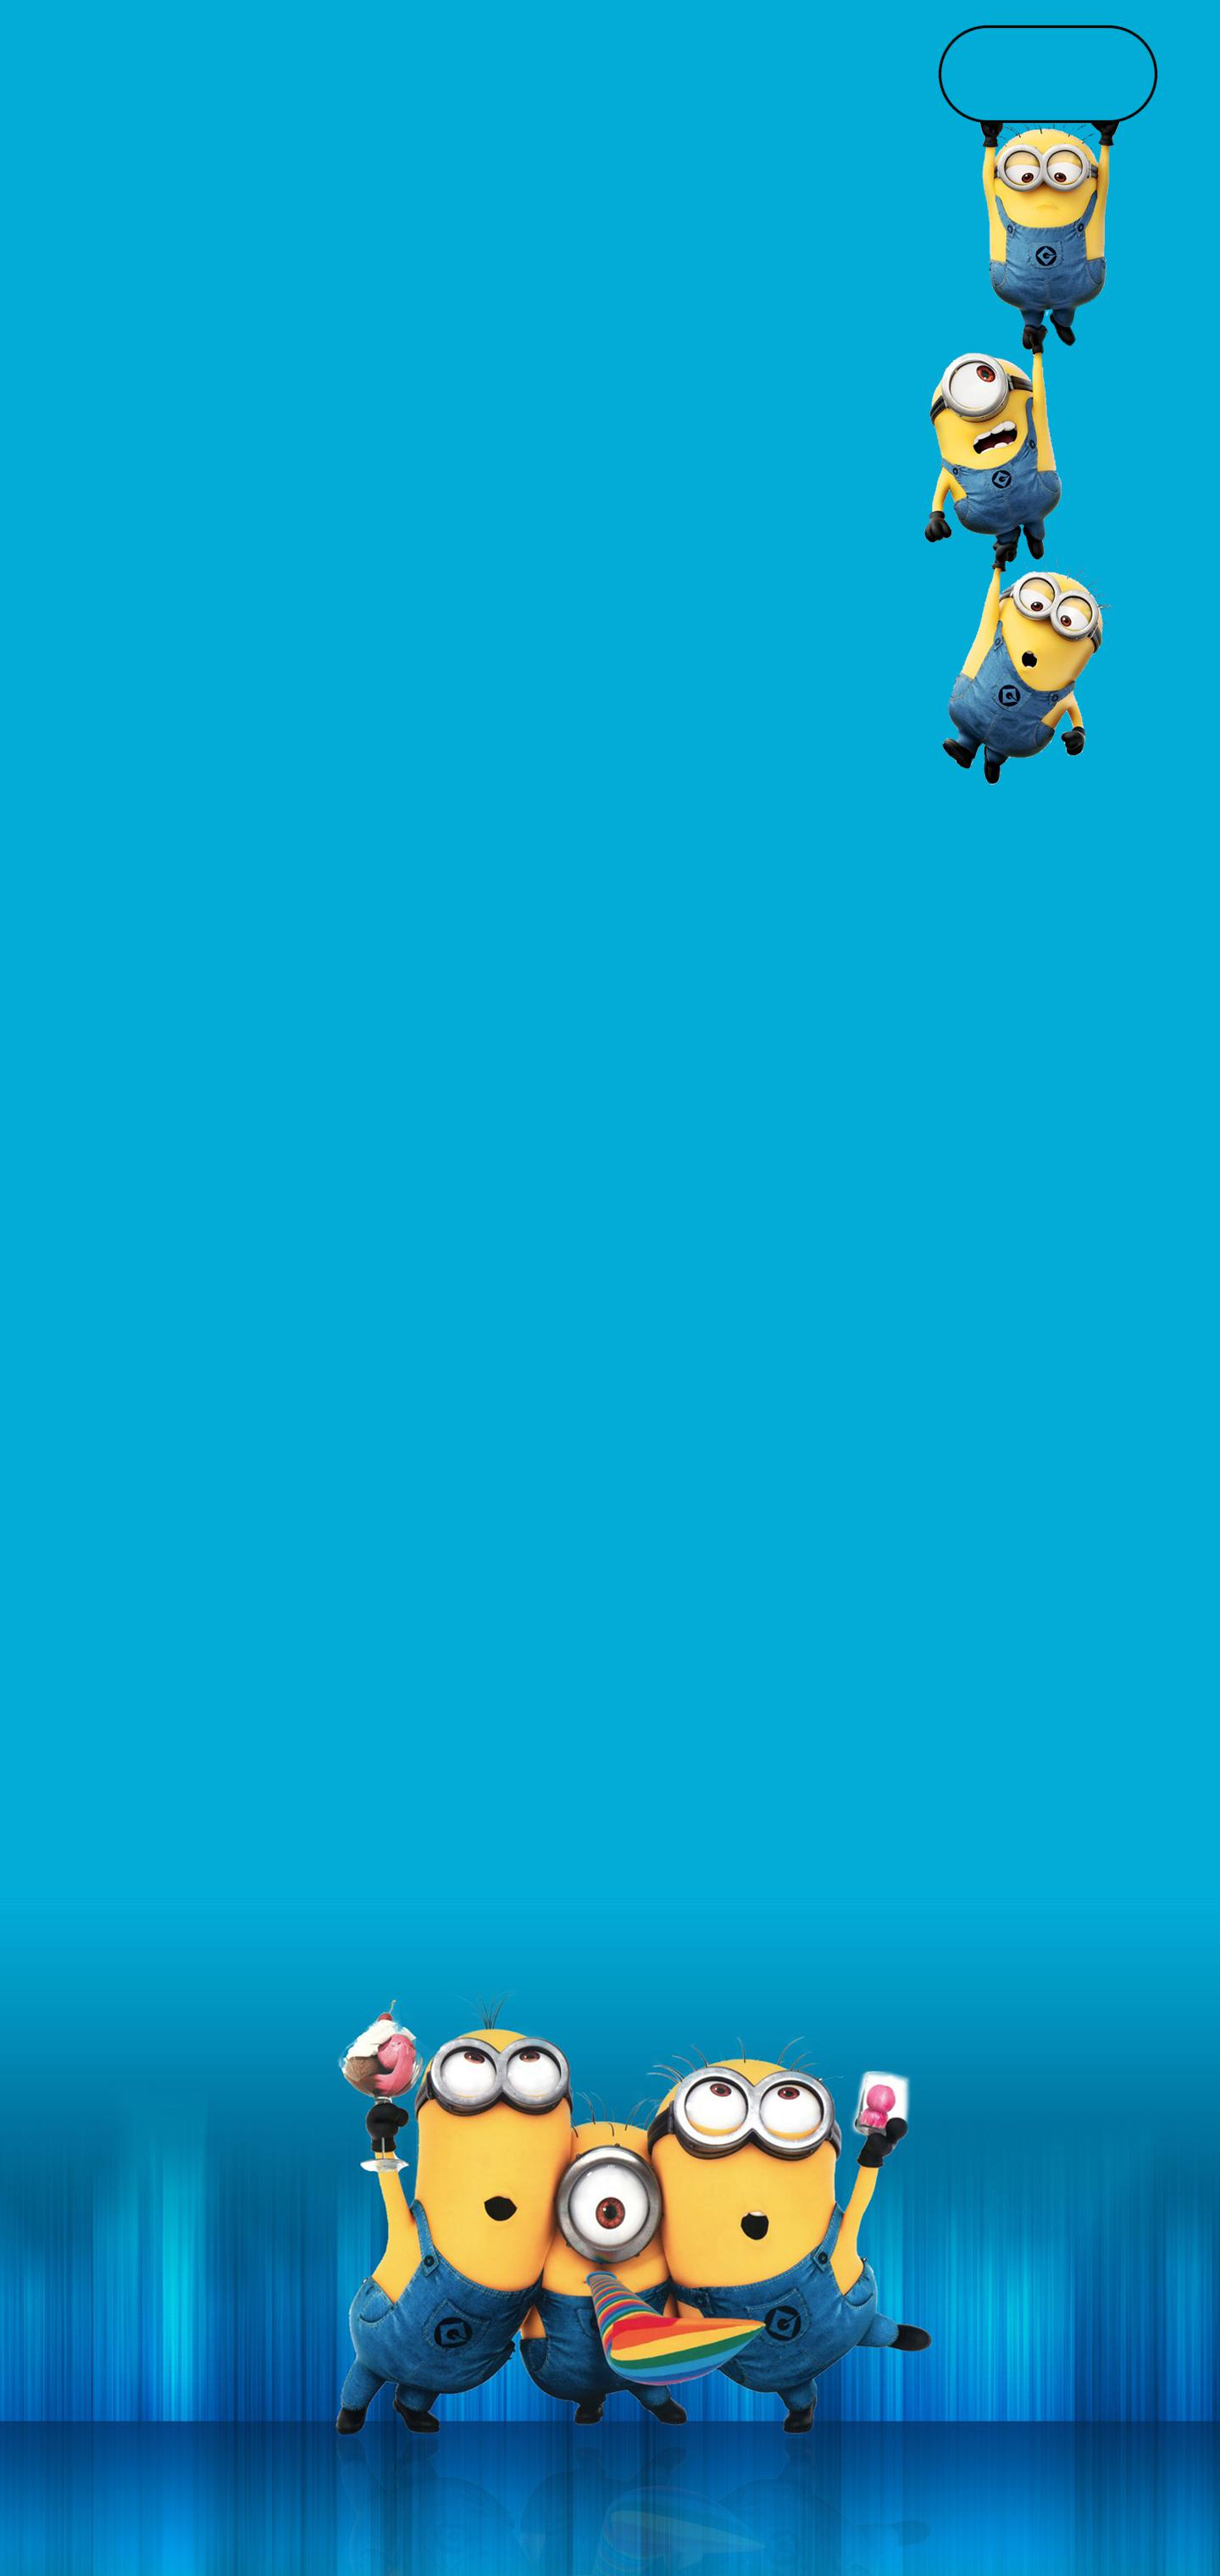 Minions Hang Out and Party Galaxy S10 Hole Punch Wallpaper 1440x3040